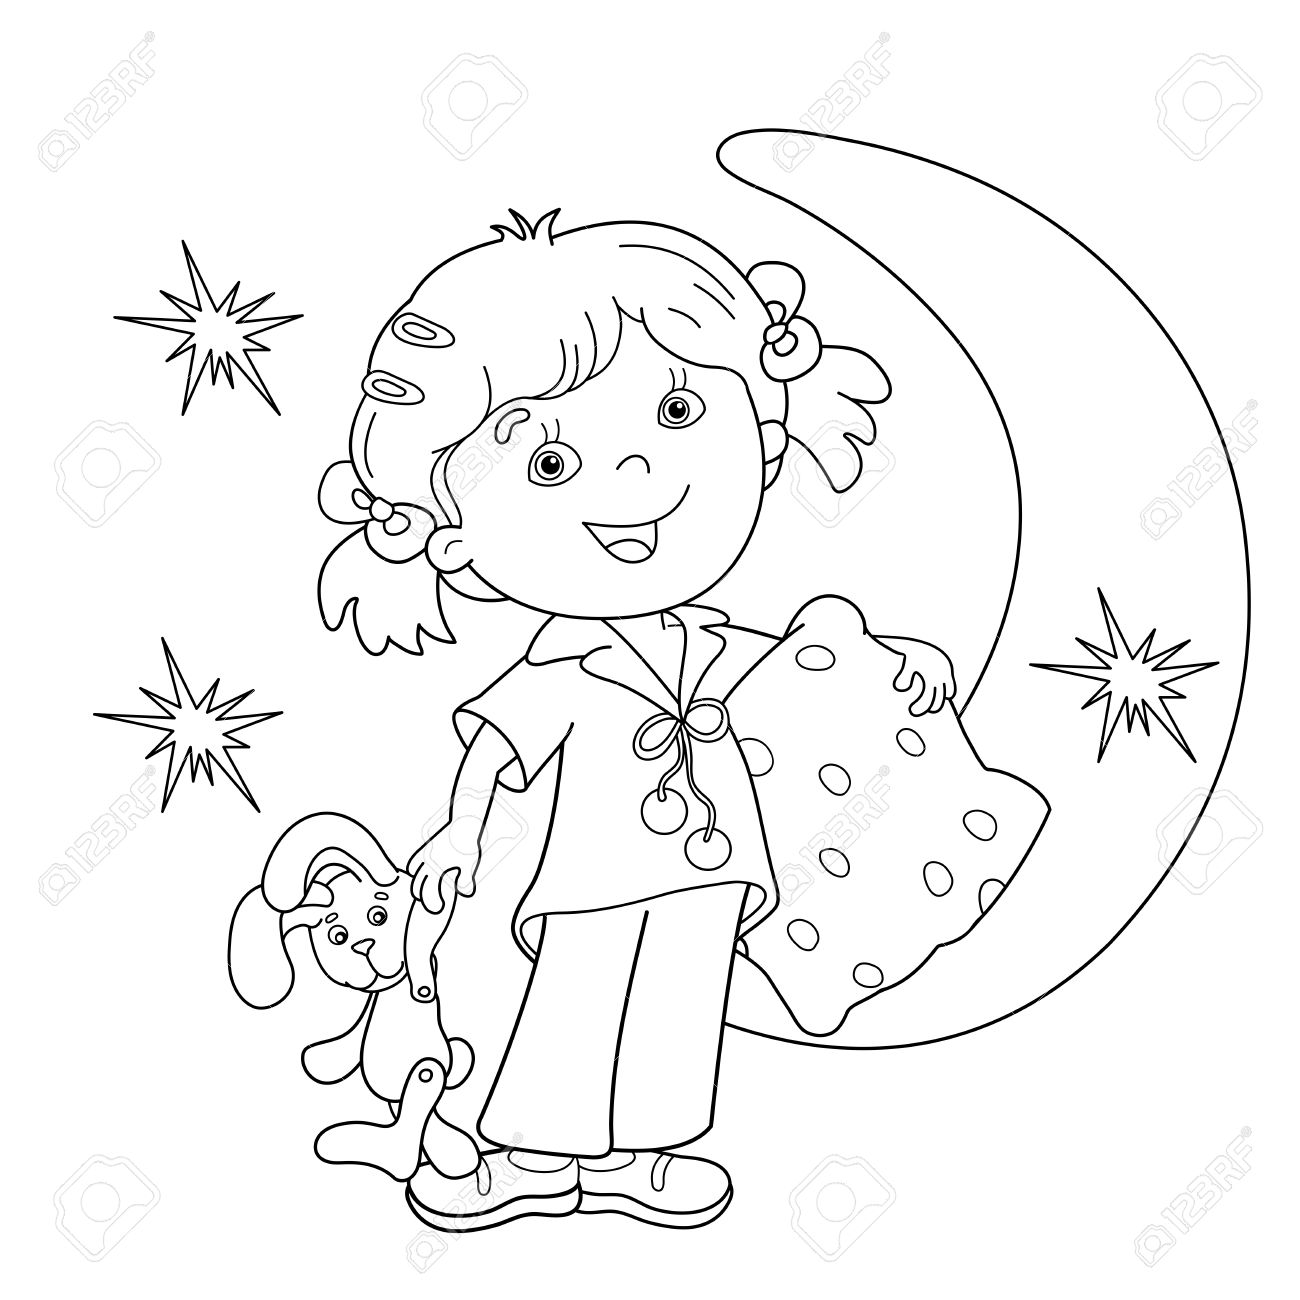 coloring page outline of cartoon girl in pajamas with pillow bedtime coloring book for